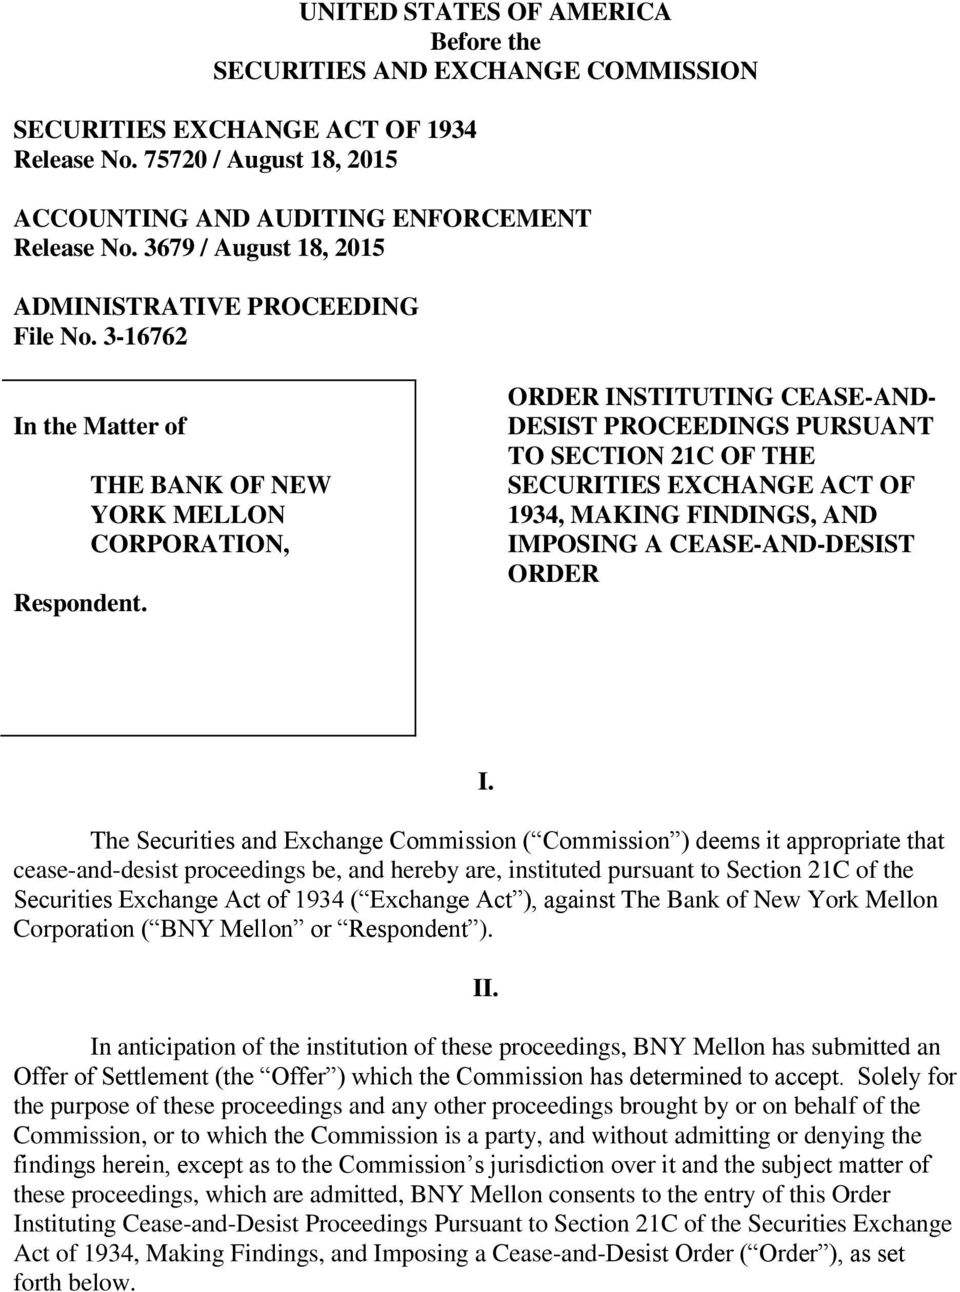 THE BANK OF NEW YORK MELLON CORPORATION, ORDER INSTITUTING CEASE-AND- DESIST PROCEEDINGS PURSUANT TO SECTION 21C OF THE SECURITIES EXCHANGE ACT OF 1934, MAKING FINDINGS, AND IMPOSING A